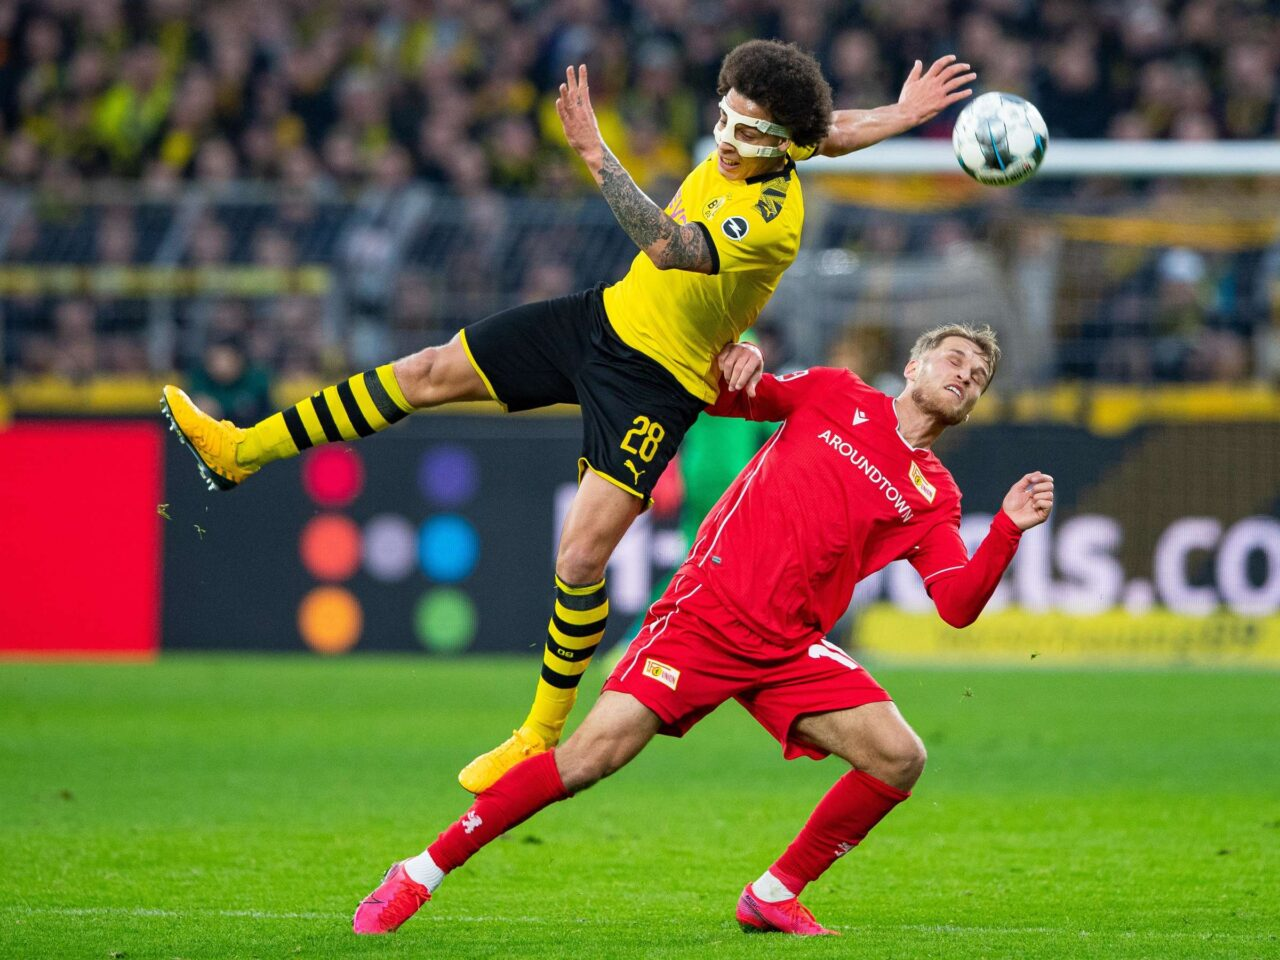 Union Berlin Vs Borussia Dortmund Free Betting Tips 2way